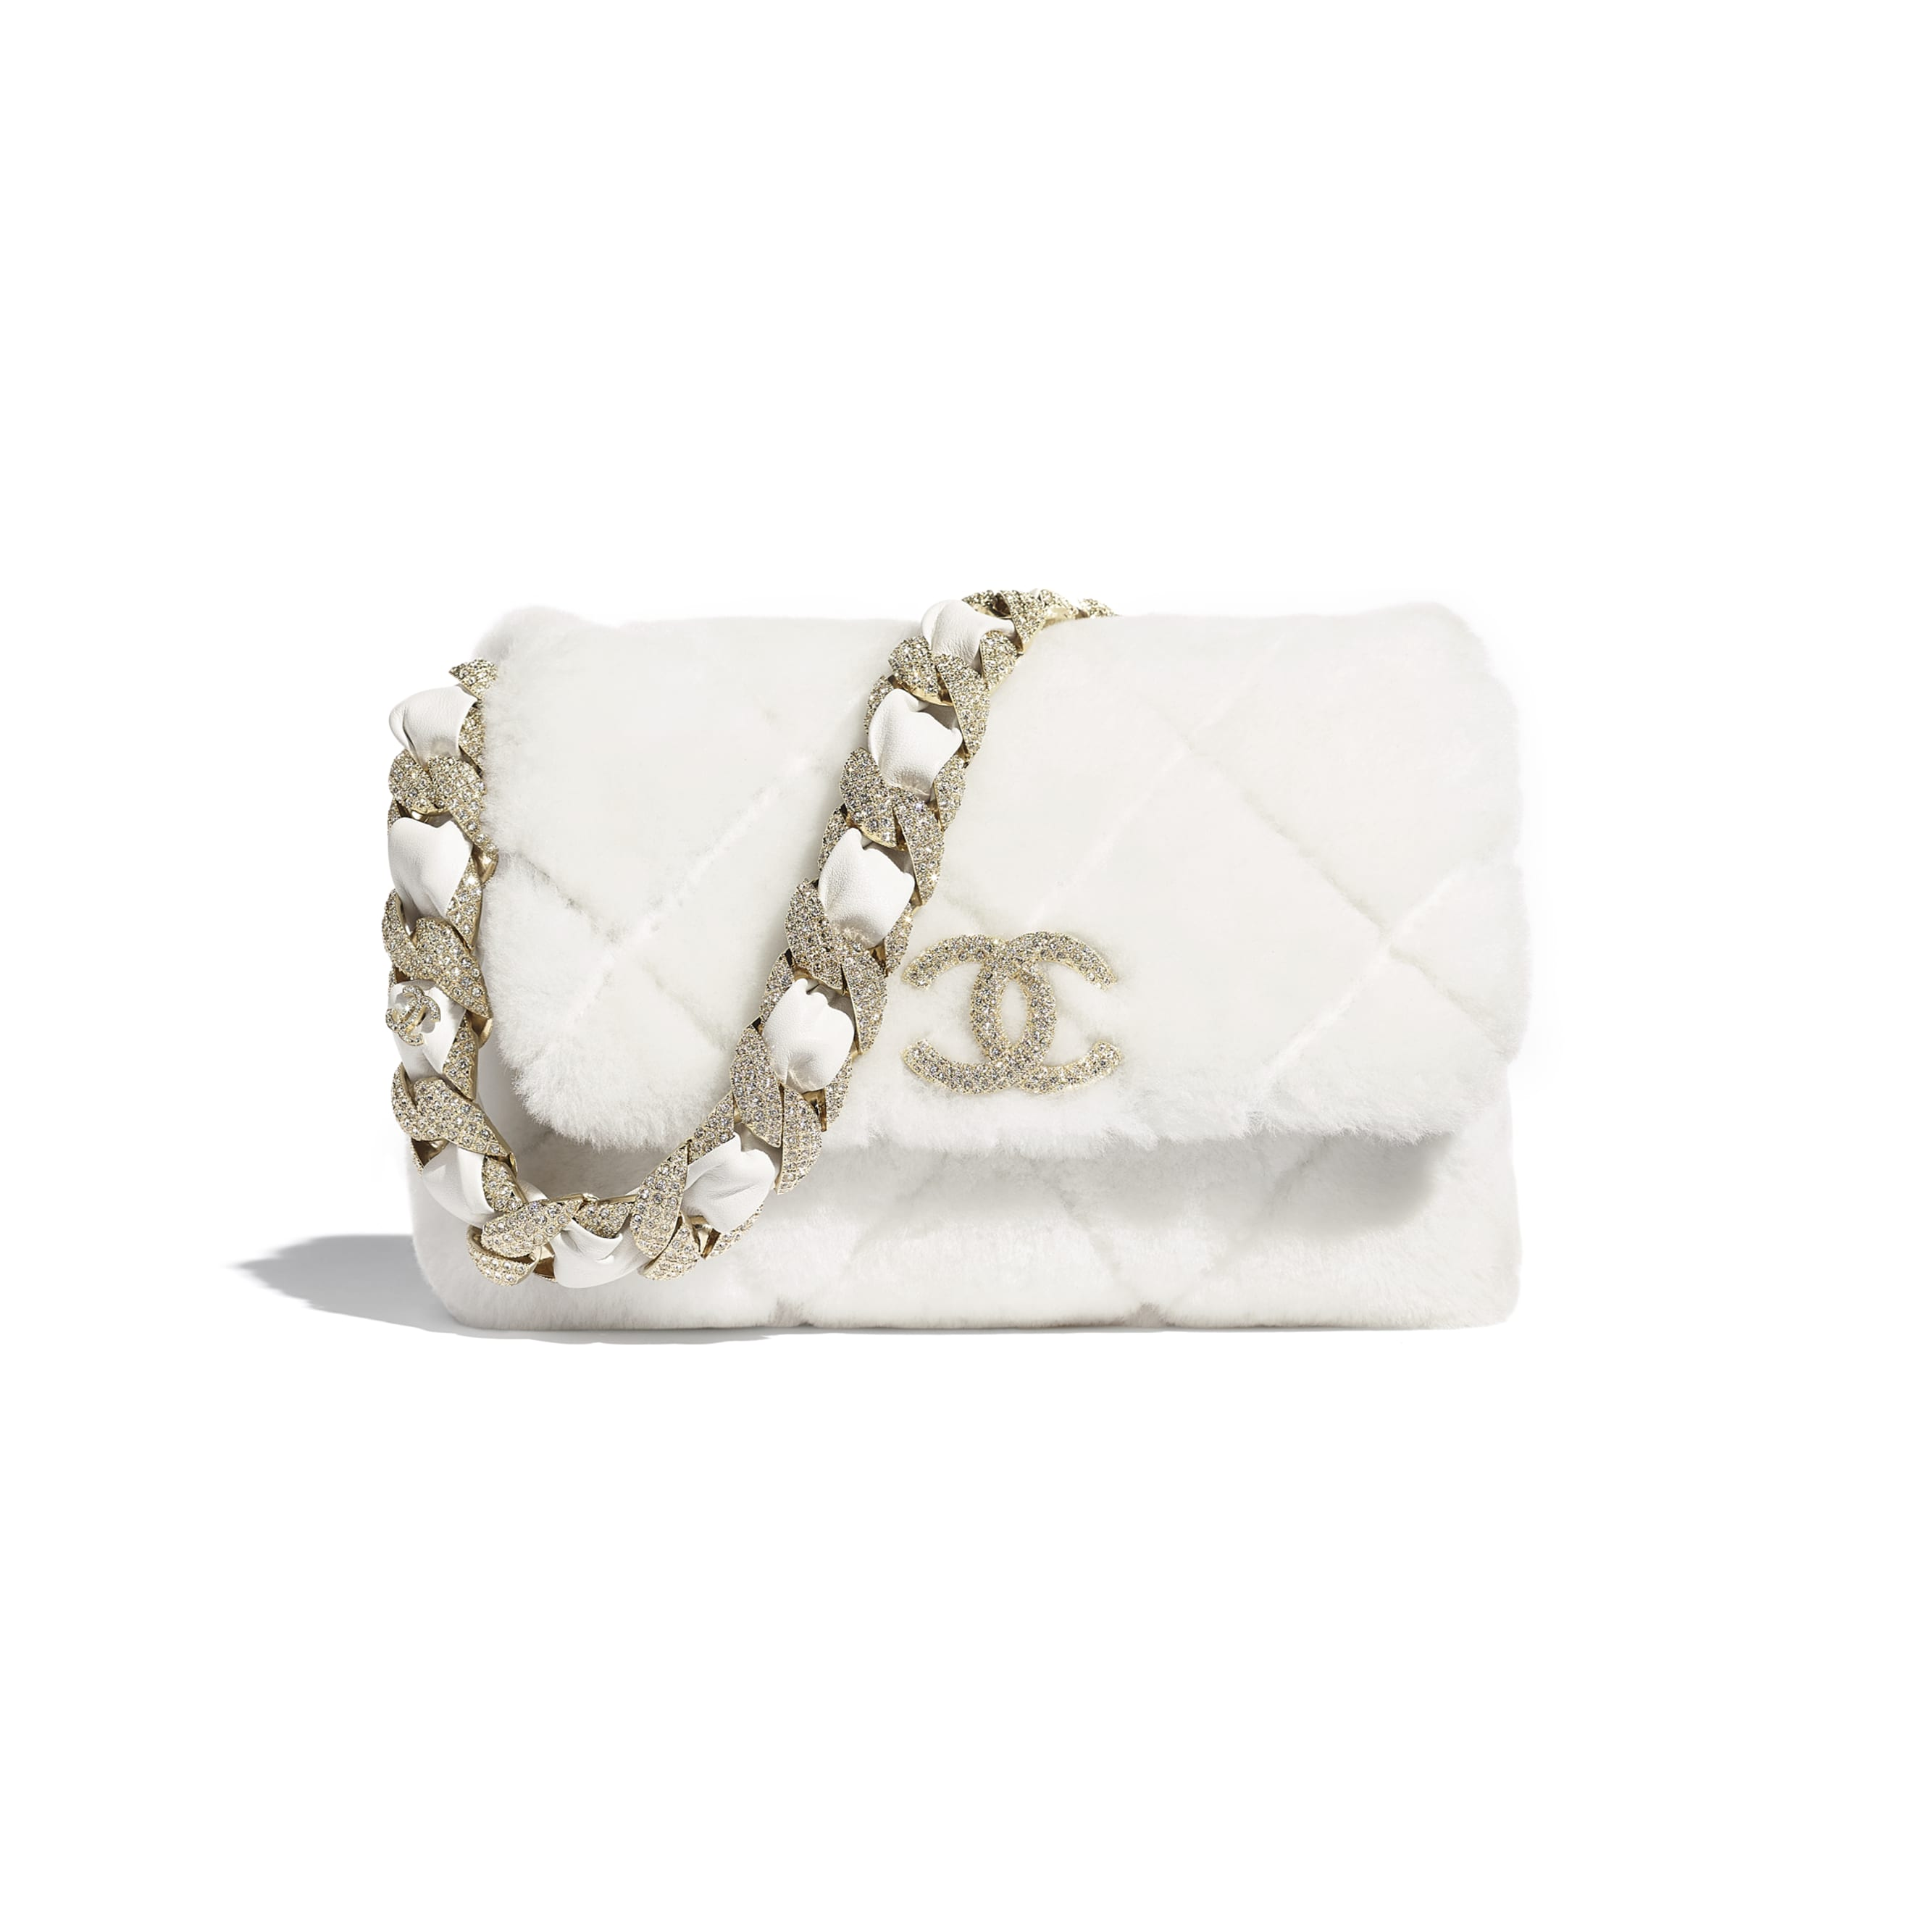 Flap Bag - White - Shearling Lambskin, Strass & Gold-Tone Metal - CHANEL - Default view - see standard sized version